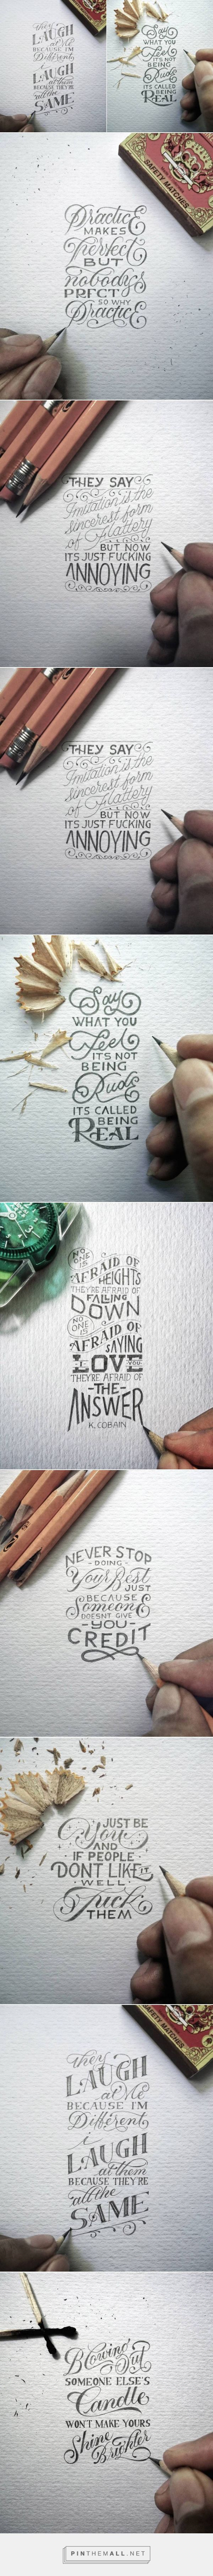 Great Hand Lettered Quotes by Dexa Muamar – Fubiz Media - created via https://pinthemall.net